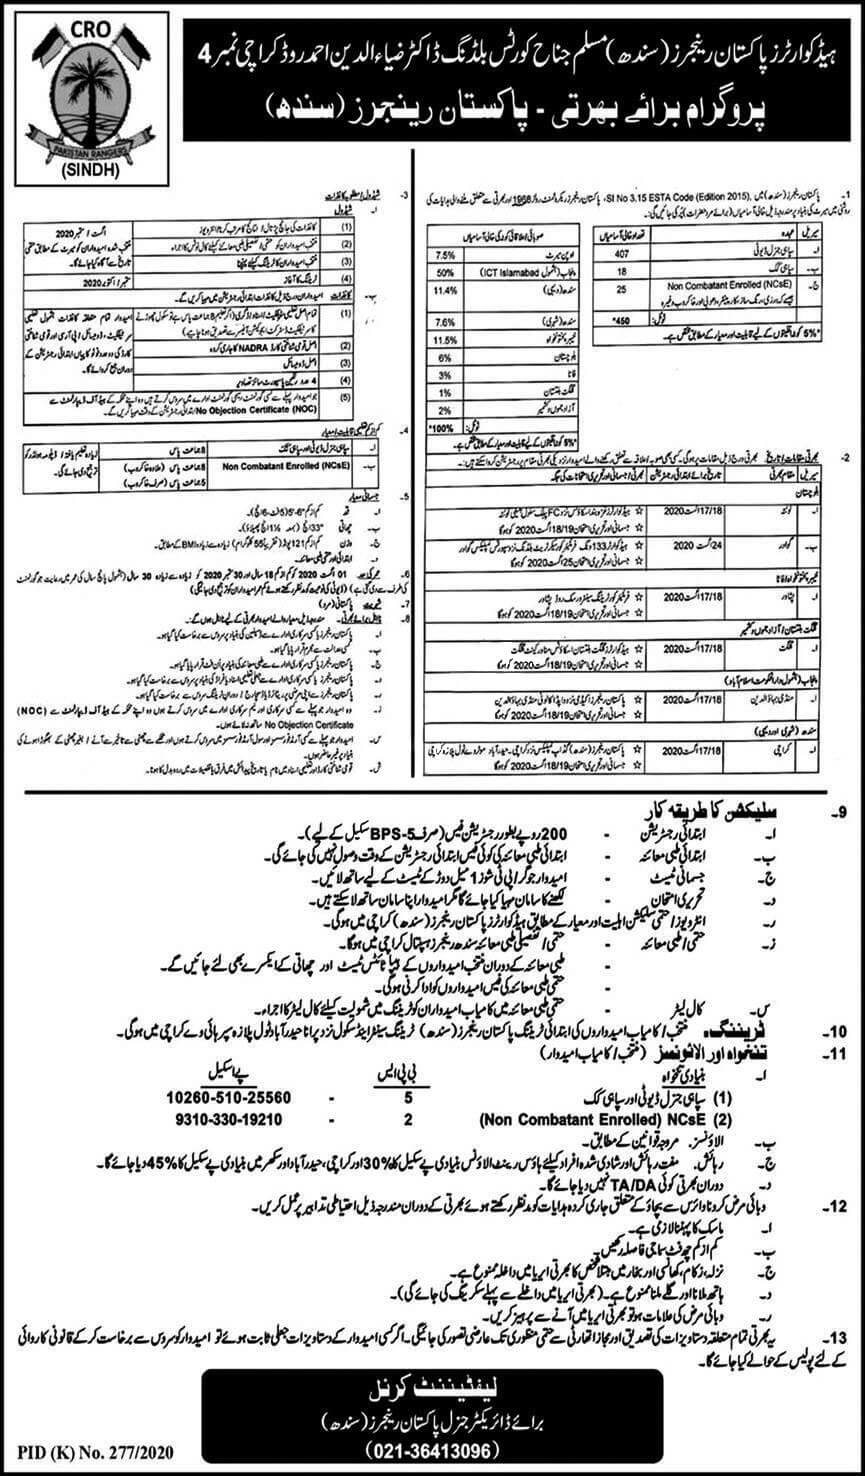 Pakistan Sindh Rangers Jobs 2020 in Karachi Advertisement